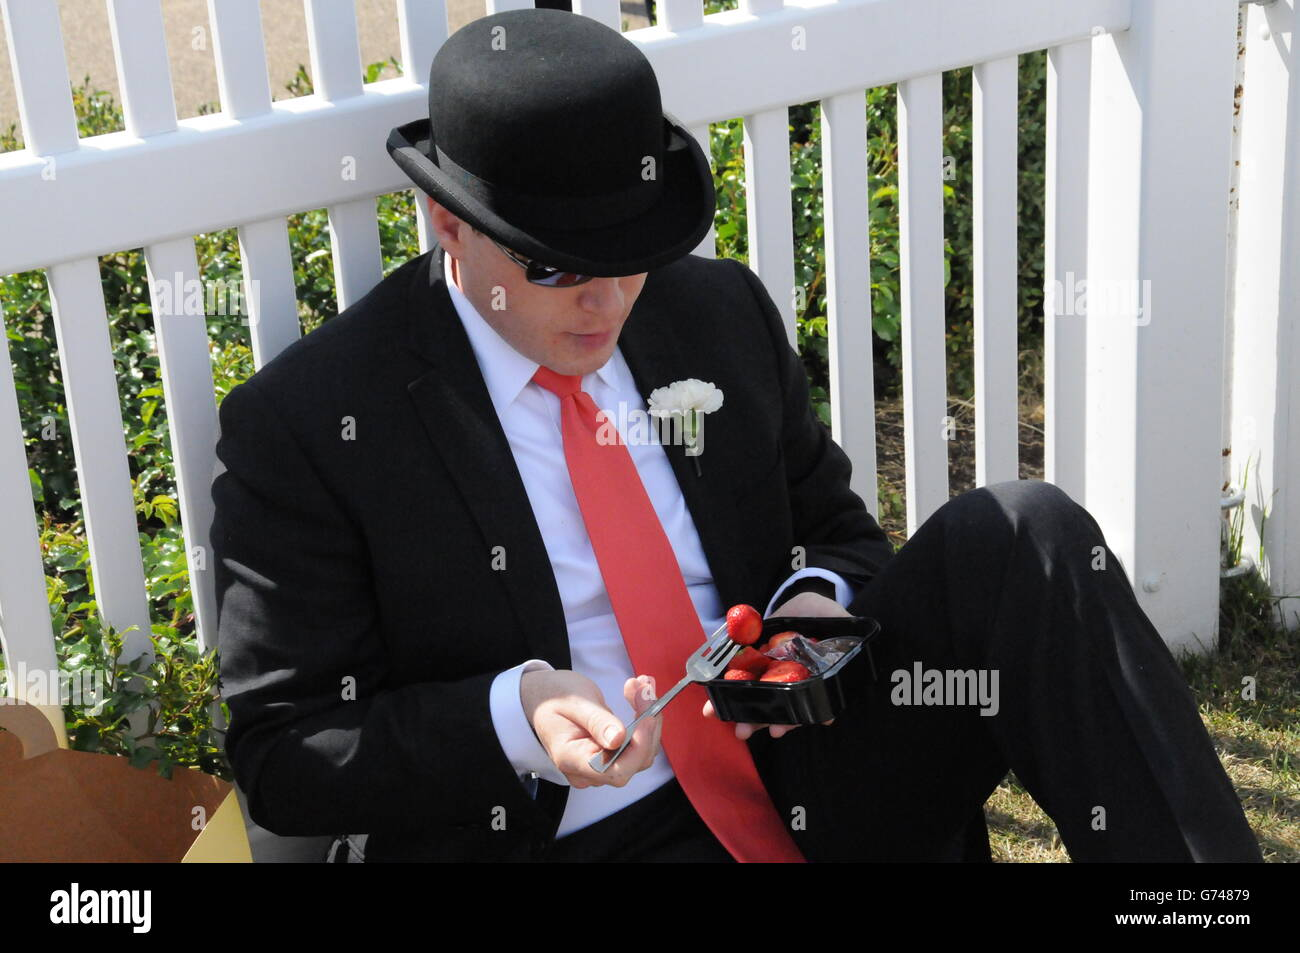 An Englishman tucks into strawberries, on a balmy June afternoon, at the Royal Ascot race meeting. - Stock Image